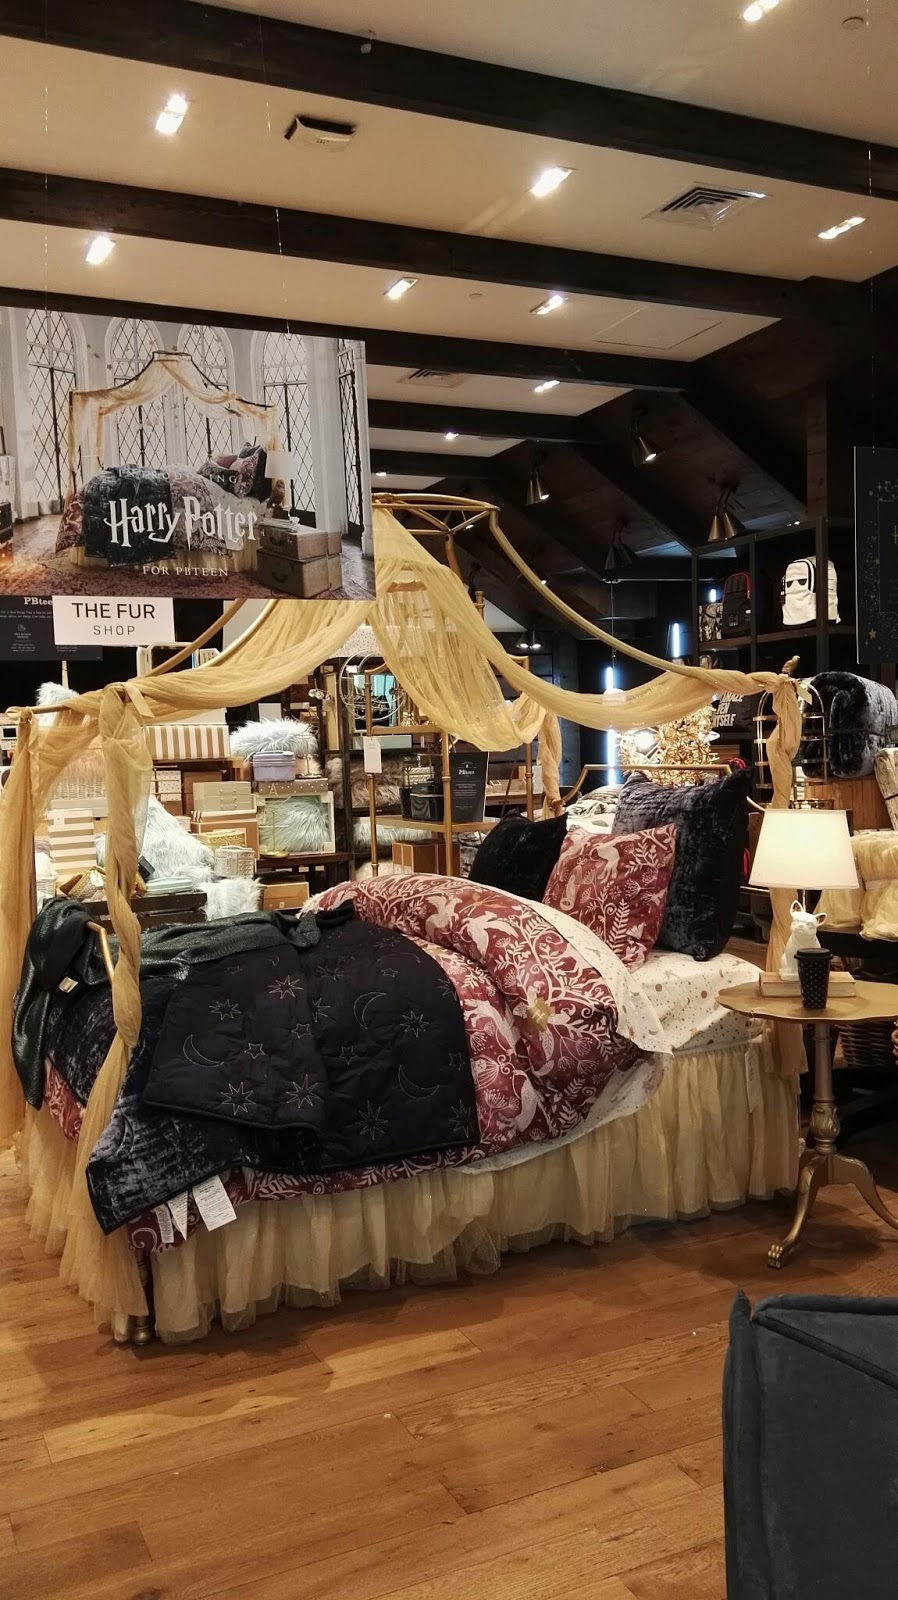 Harry Potter Furniture At Pottery Barn Teens In Avenues